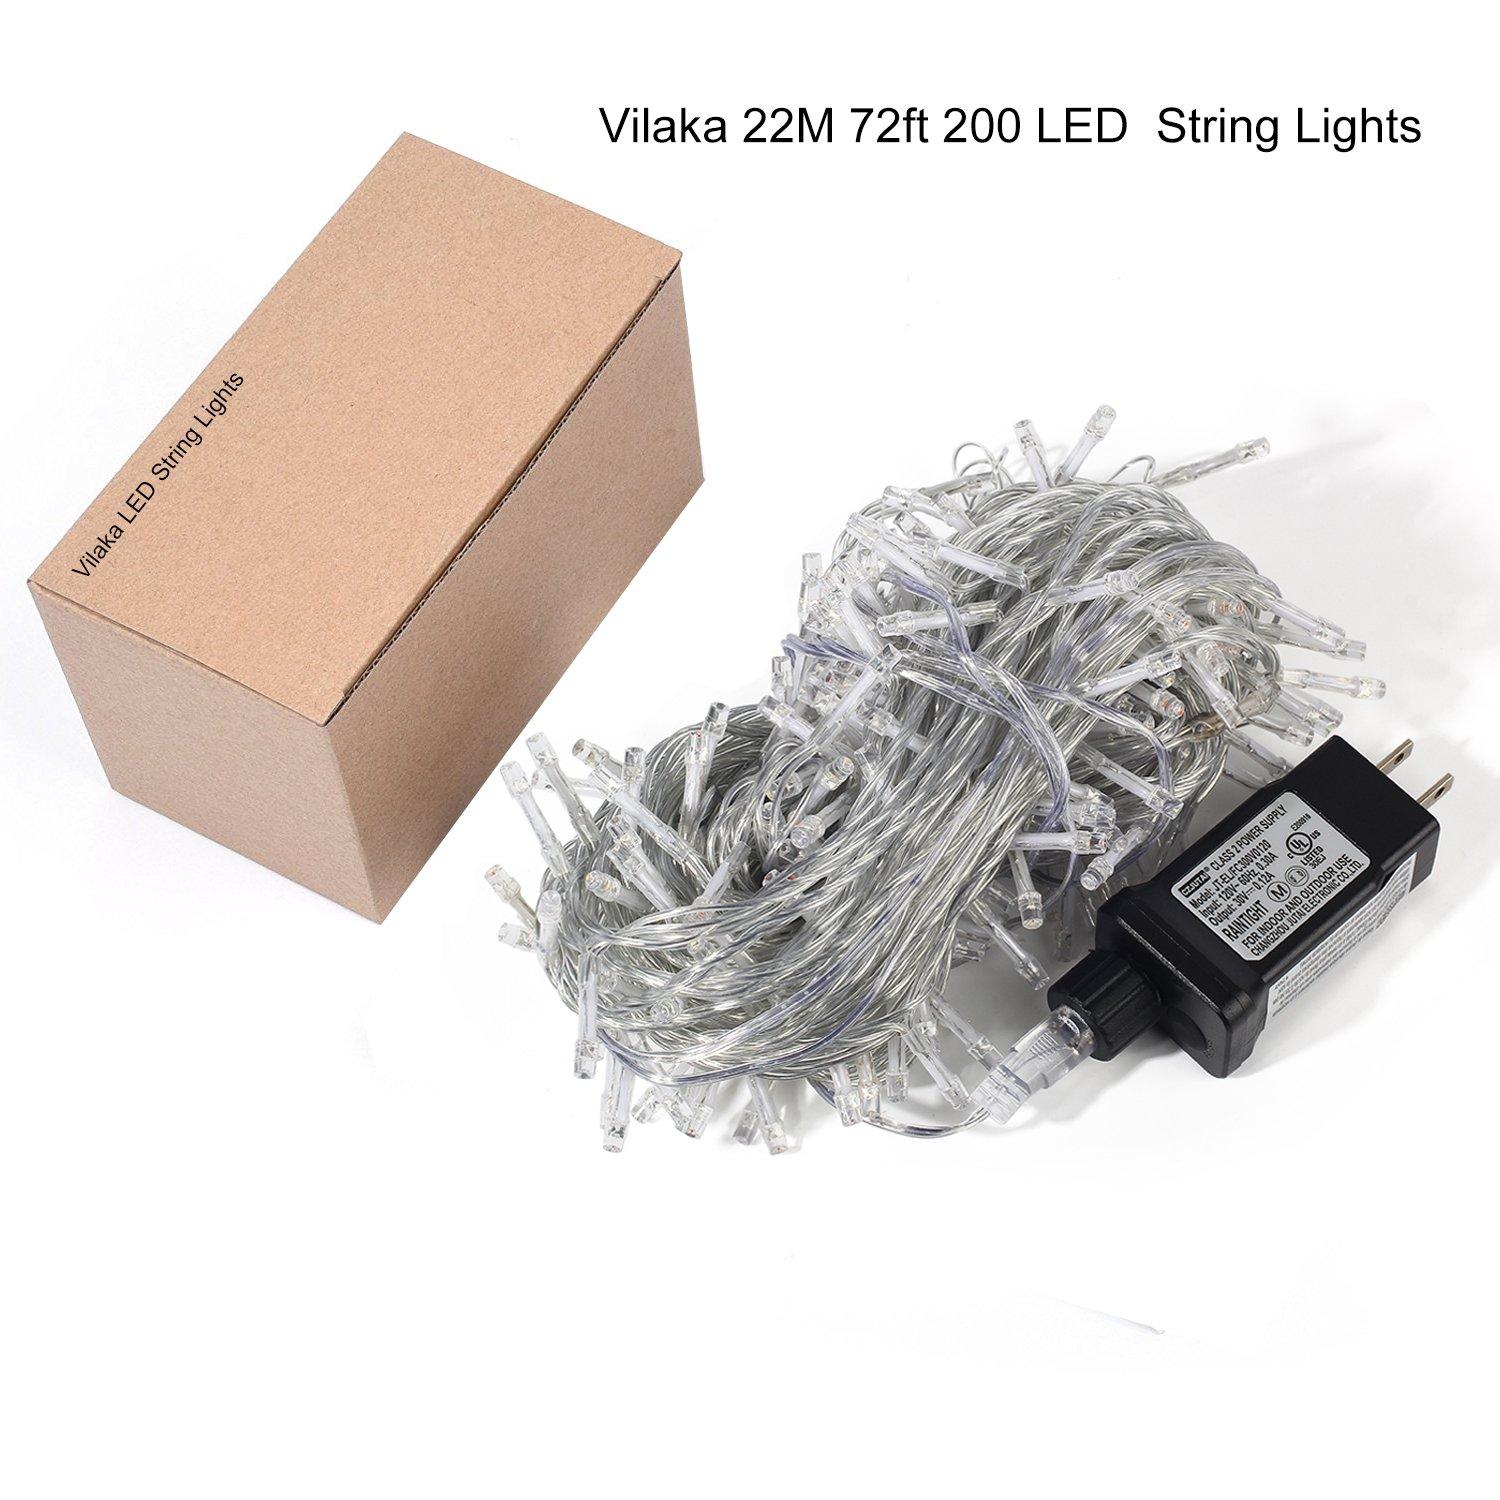 Christmas String Lights 22M/72ft 200 LEDs Indoor String Lights with 8 Flash Changing Modes, 29V Safety Outdoor Waterproof Plug-in Fairy Twinkle Lights for Halloween/Garden/Party/Festive (Multi Color) by Vilaka (Image #7)